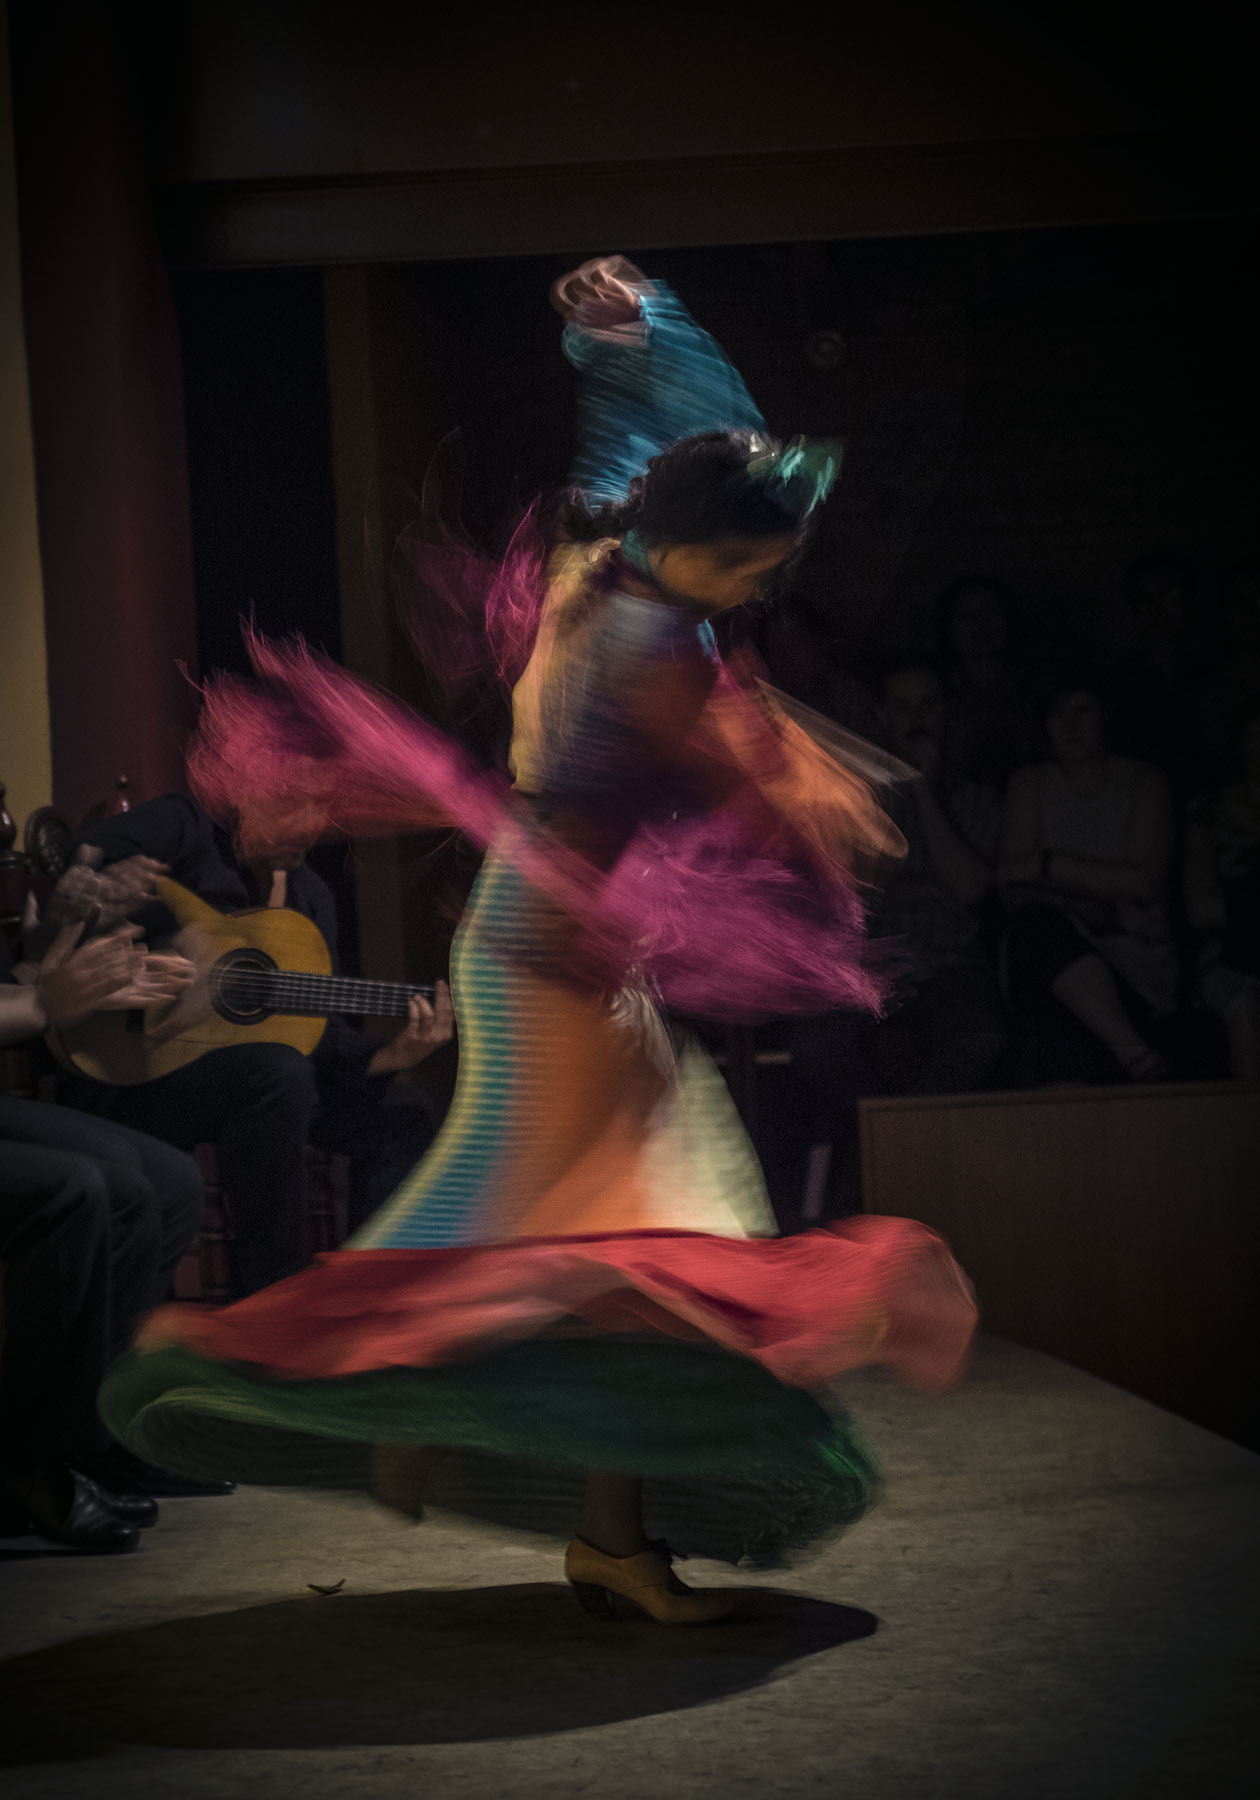 Andalusia - Flamenco dancer, Seville